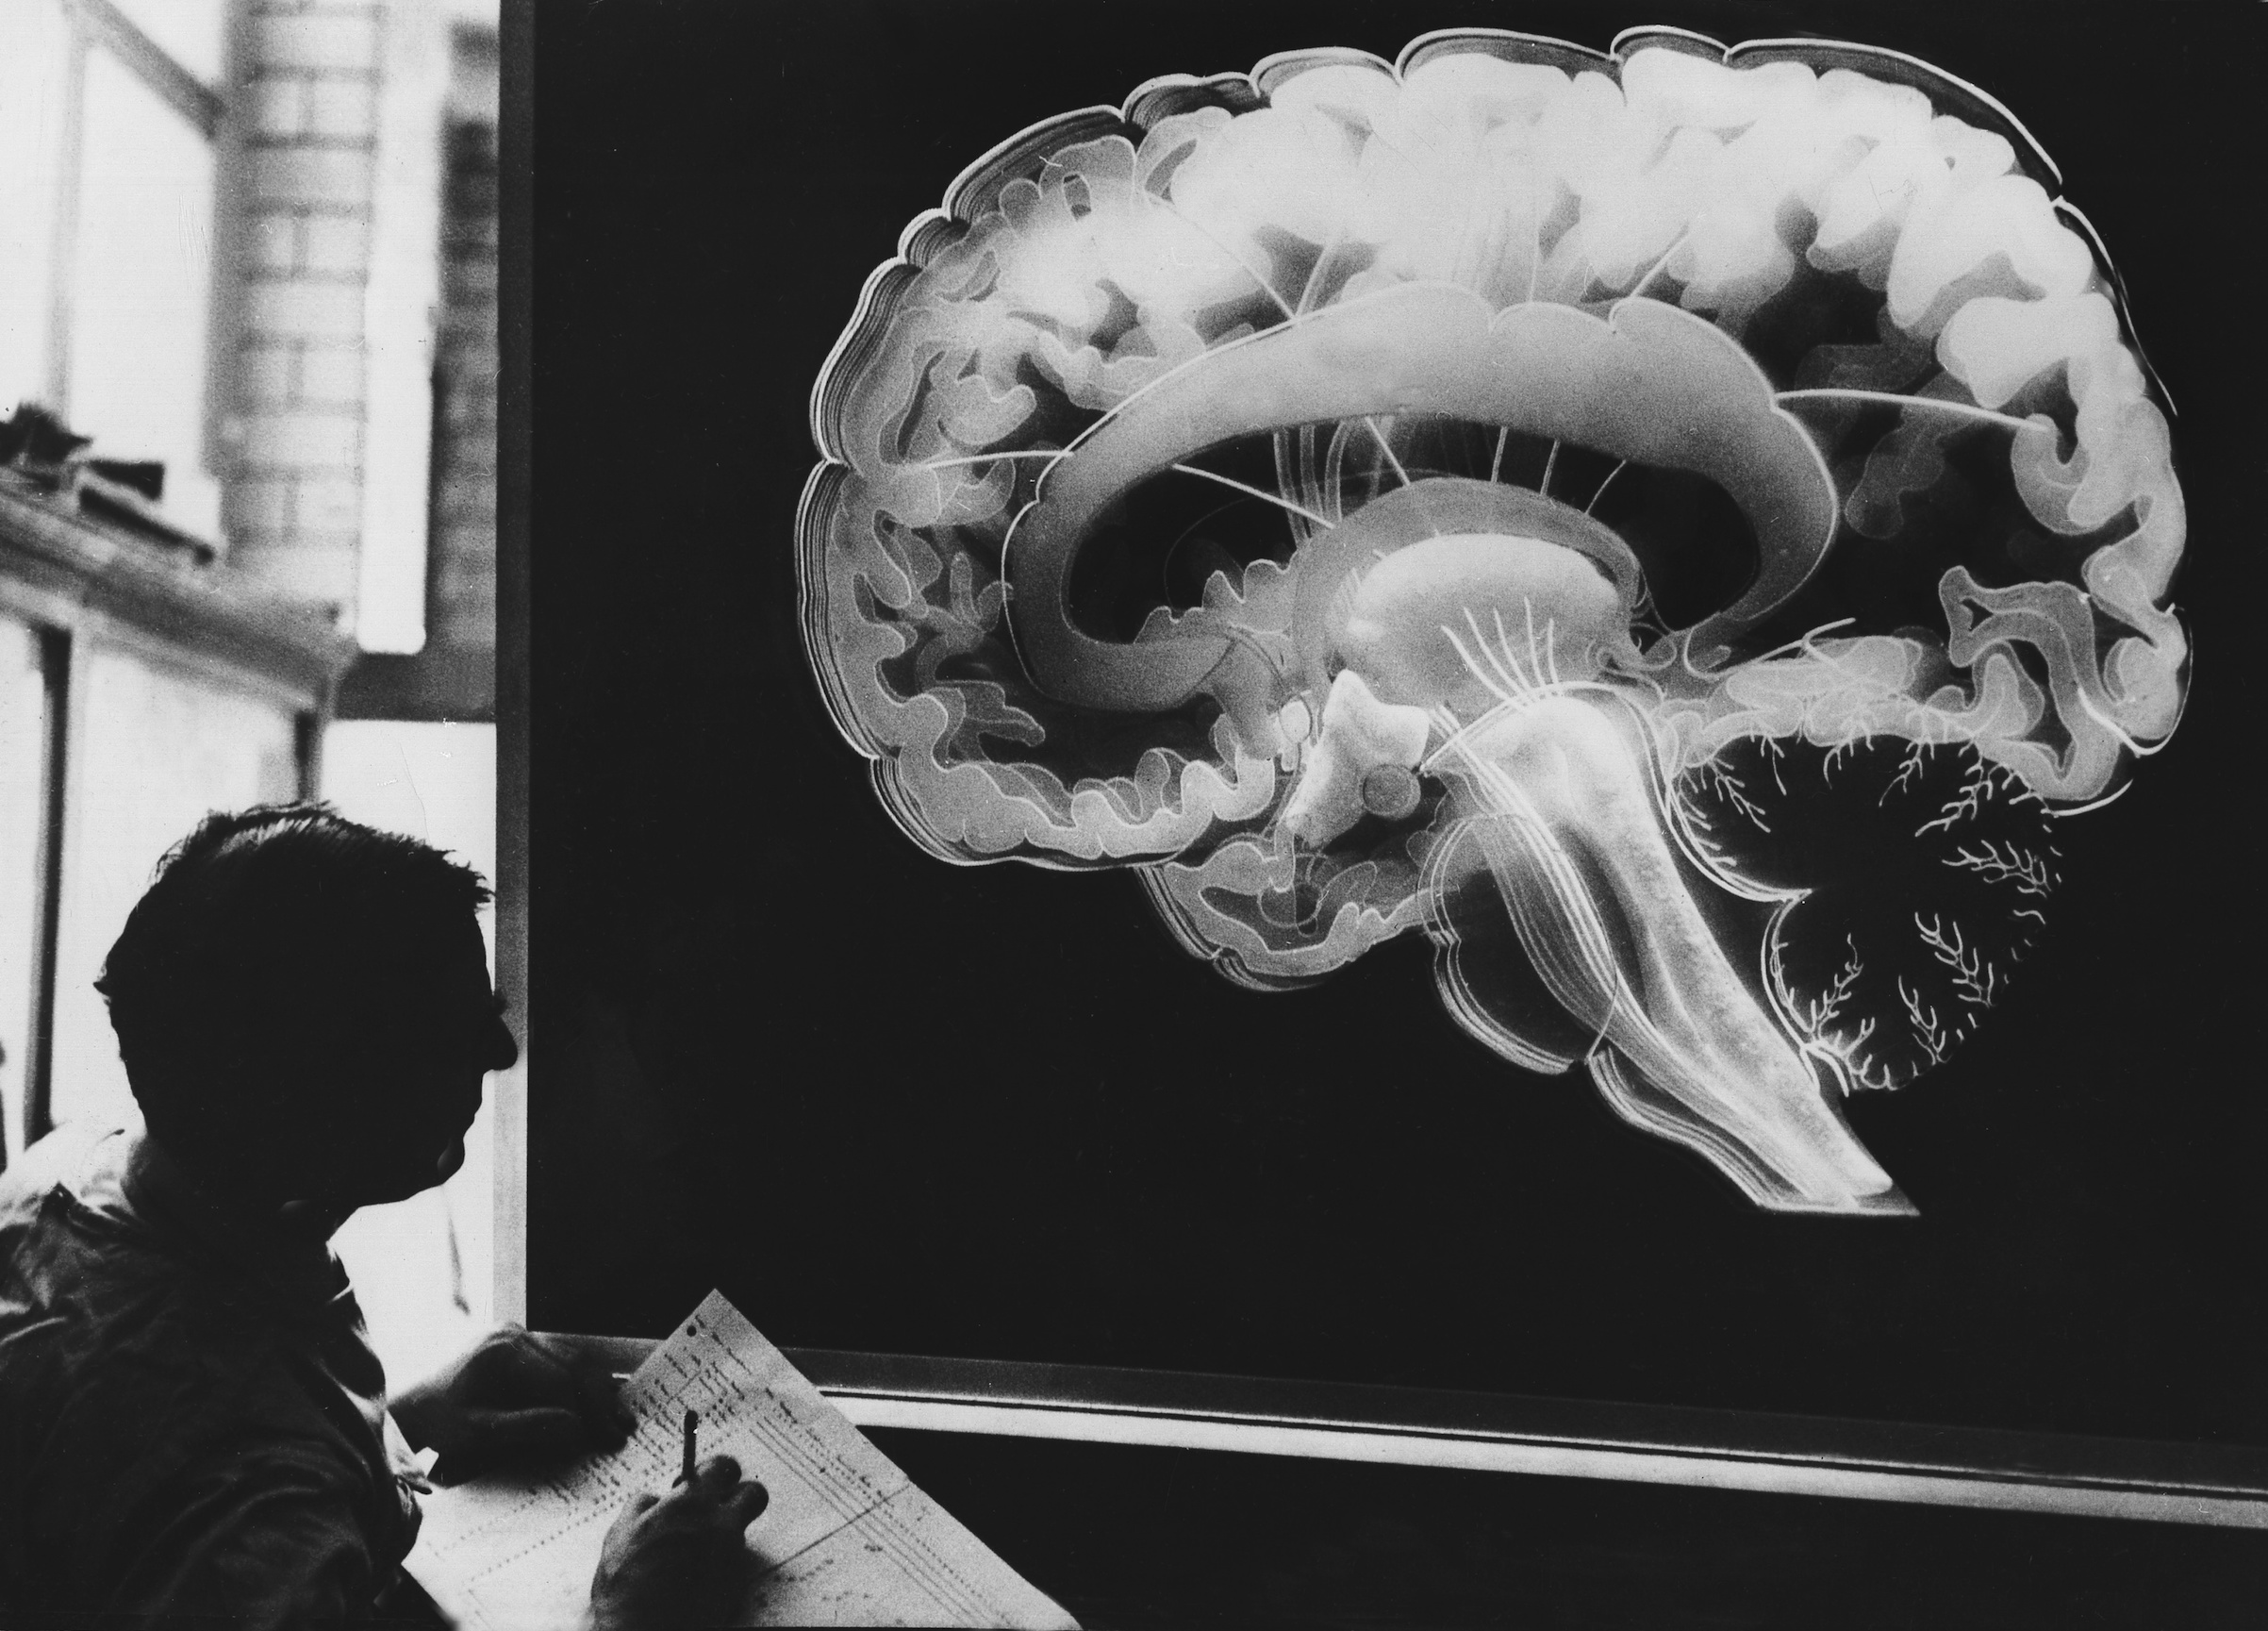 A plastic model of a human brain, Philadelphia, 1960.